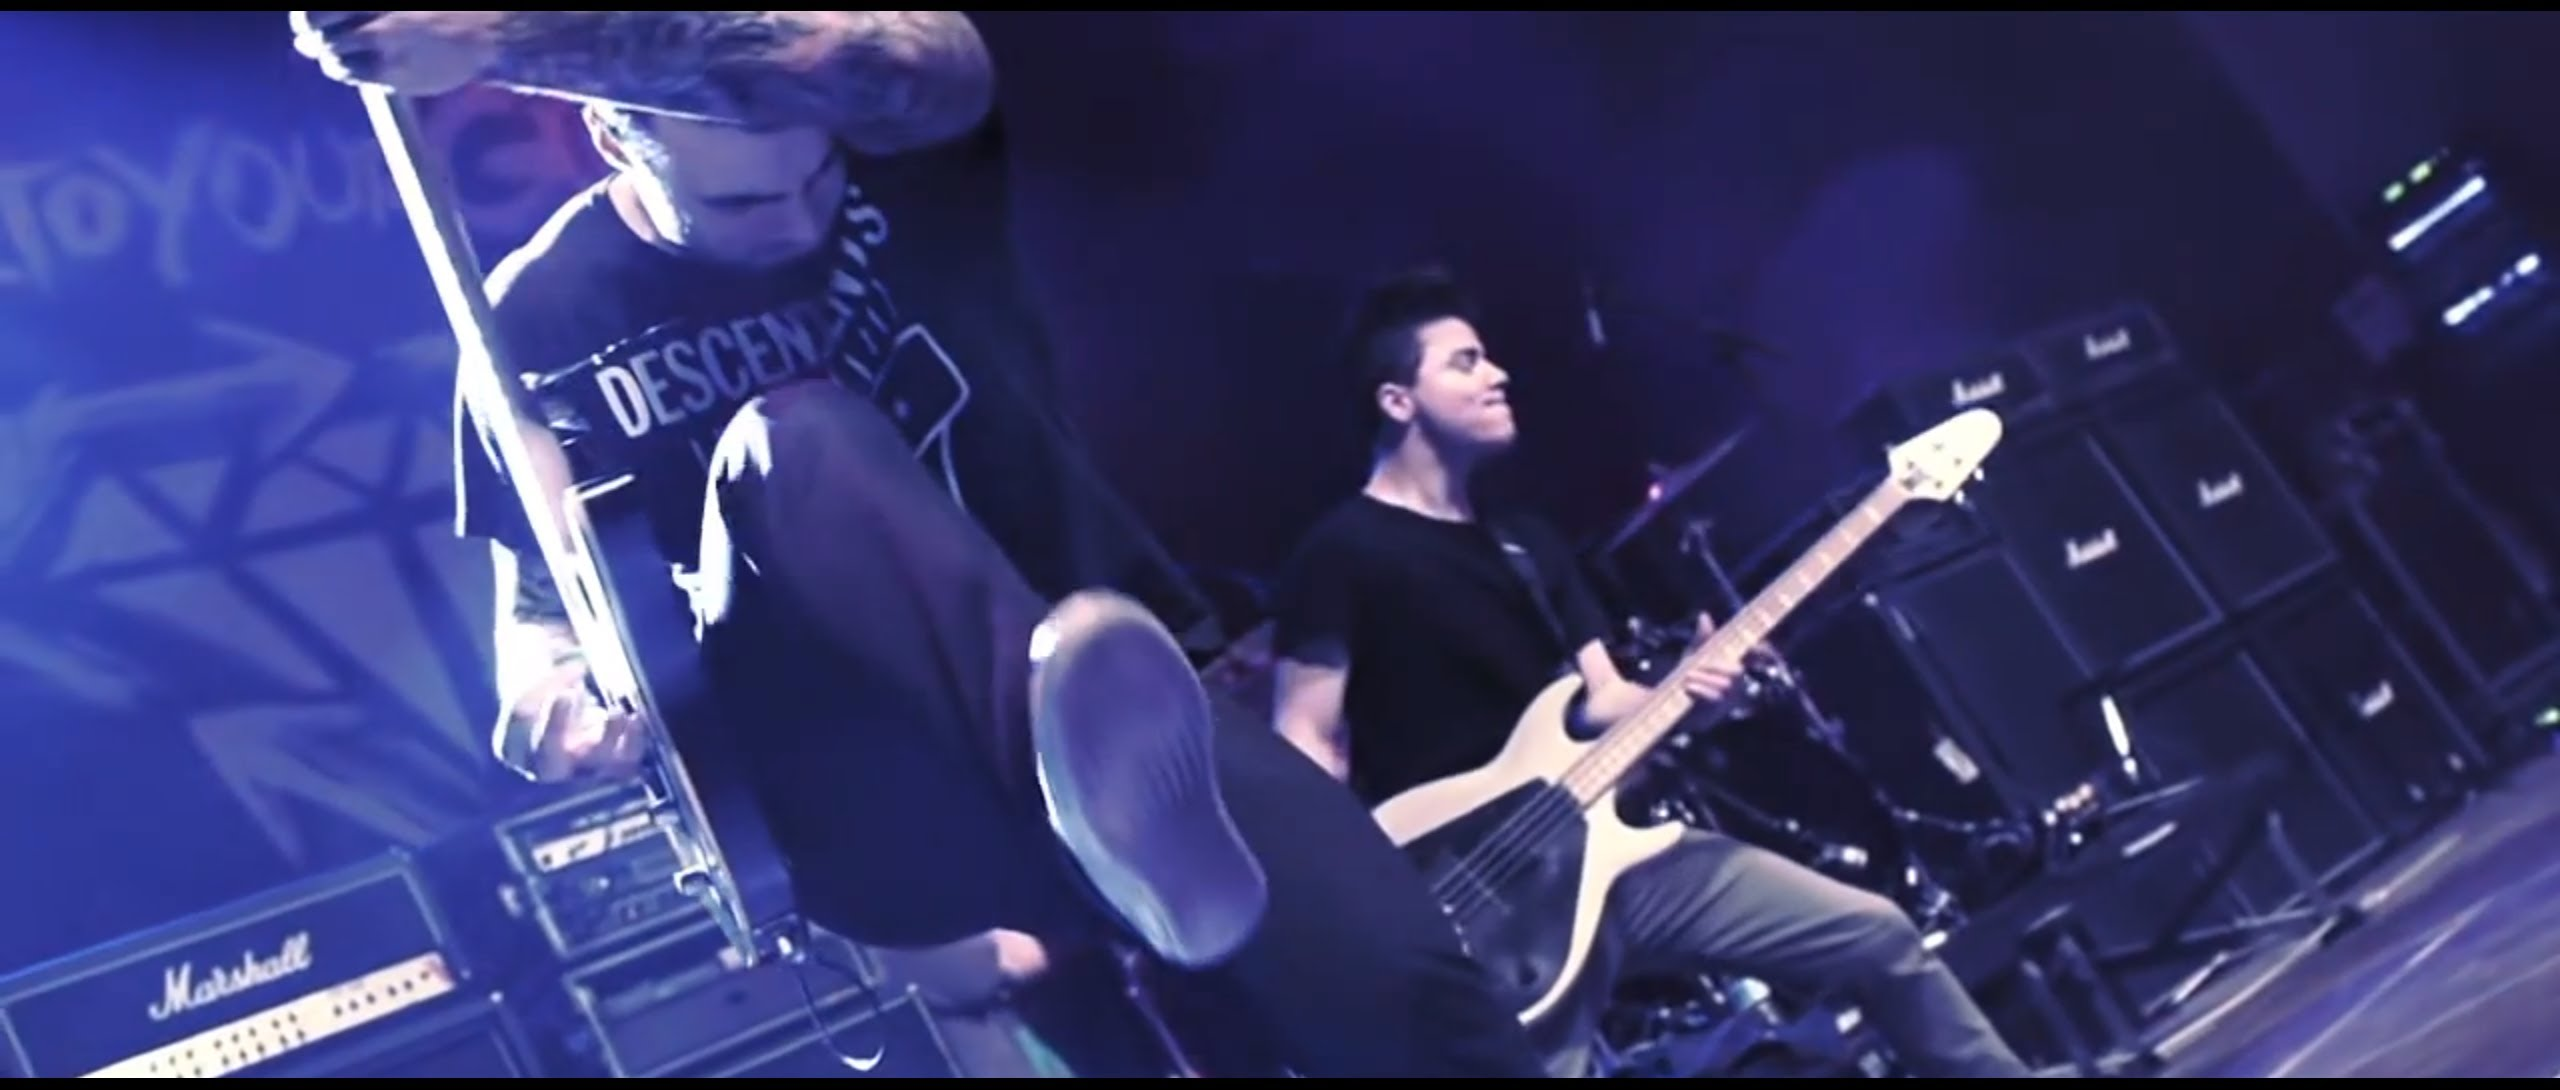 STICK TO YOUR GUNS - The Bond (Official Music Video)